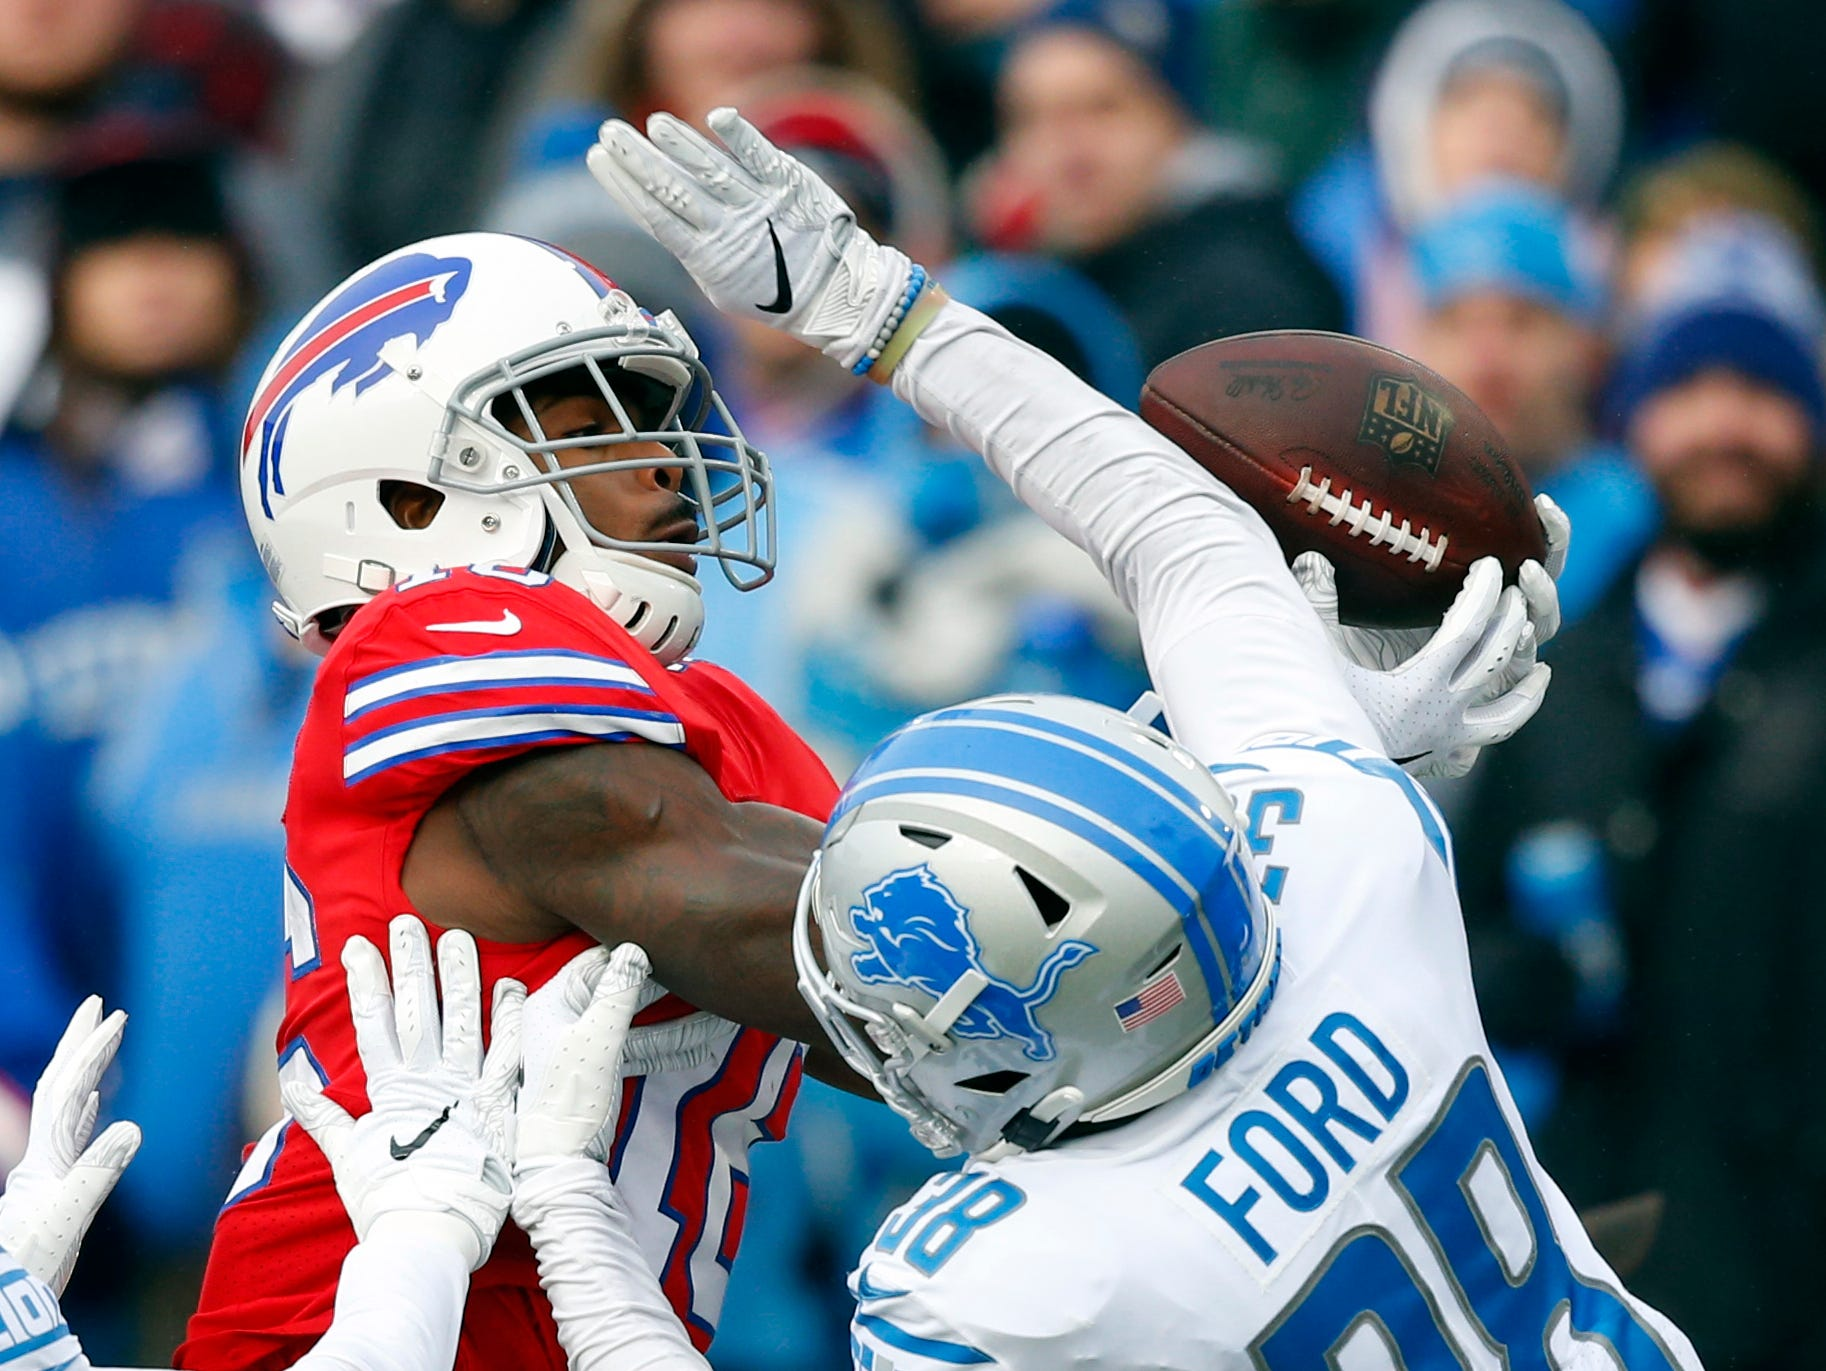 Buffalo Bills wide receiver Robert Foster (16) catches a pass under pressure from Detroit Lions defensive back Mike Ford (38) during the first half.